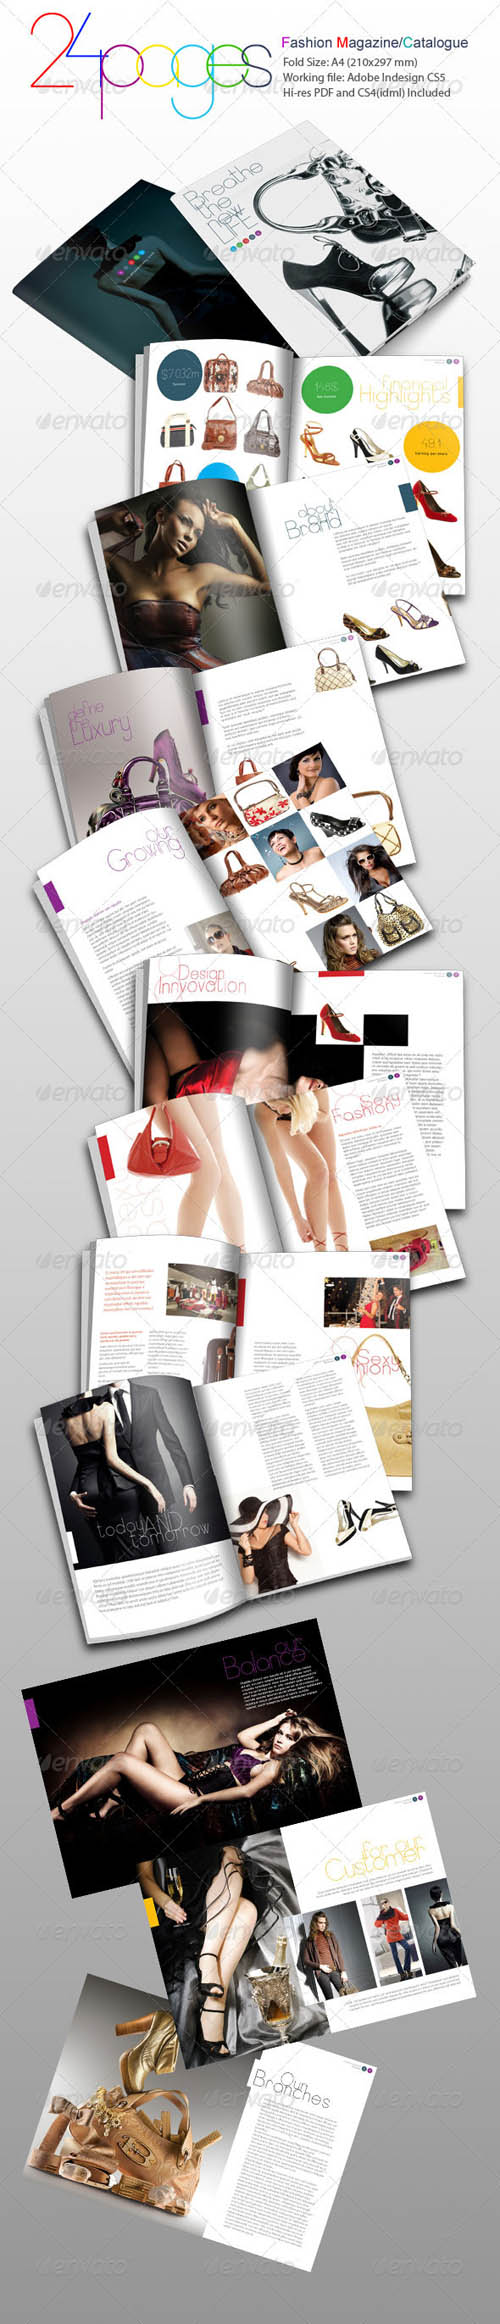 FREE 24 Pages Fashion Magazine and catalogue template (indesign ...